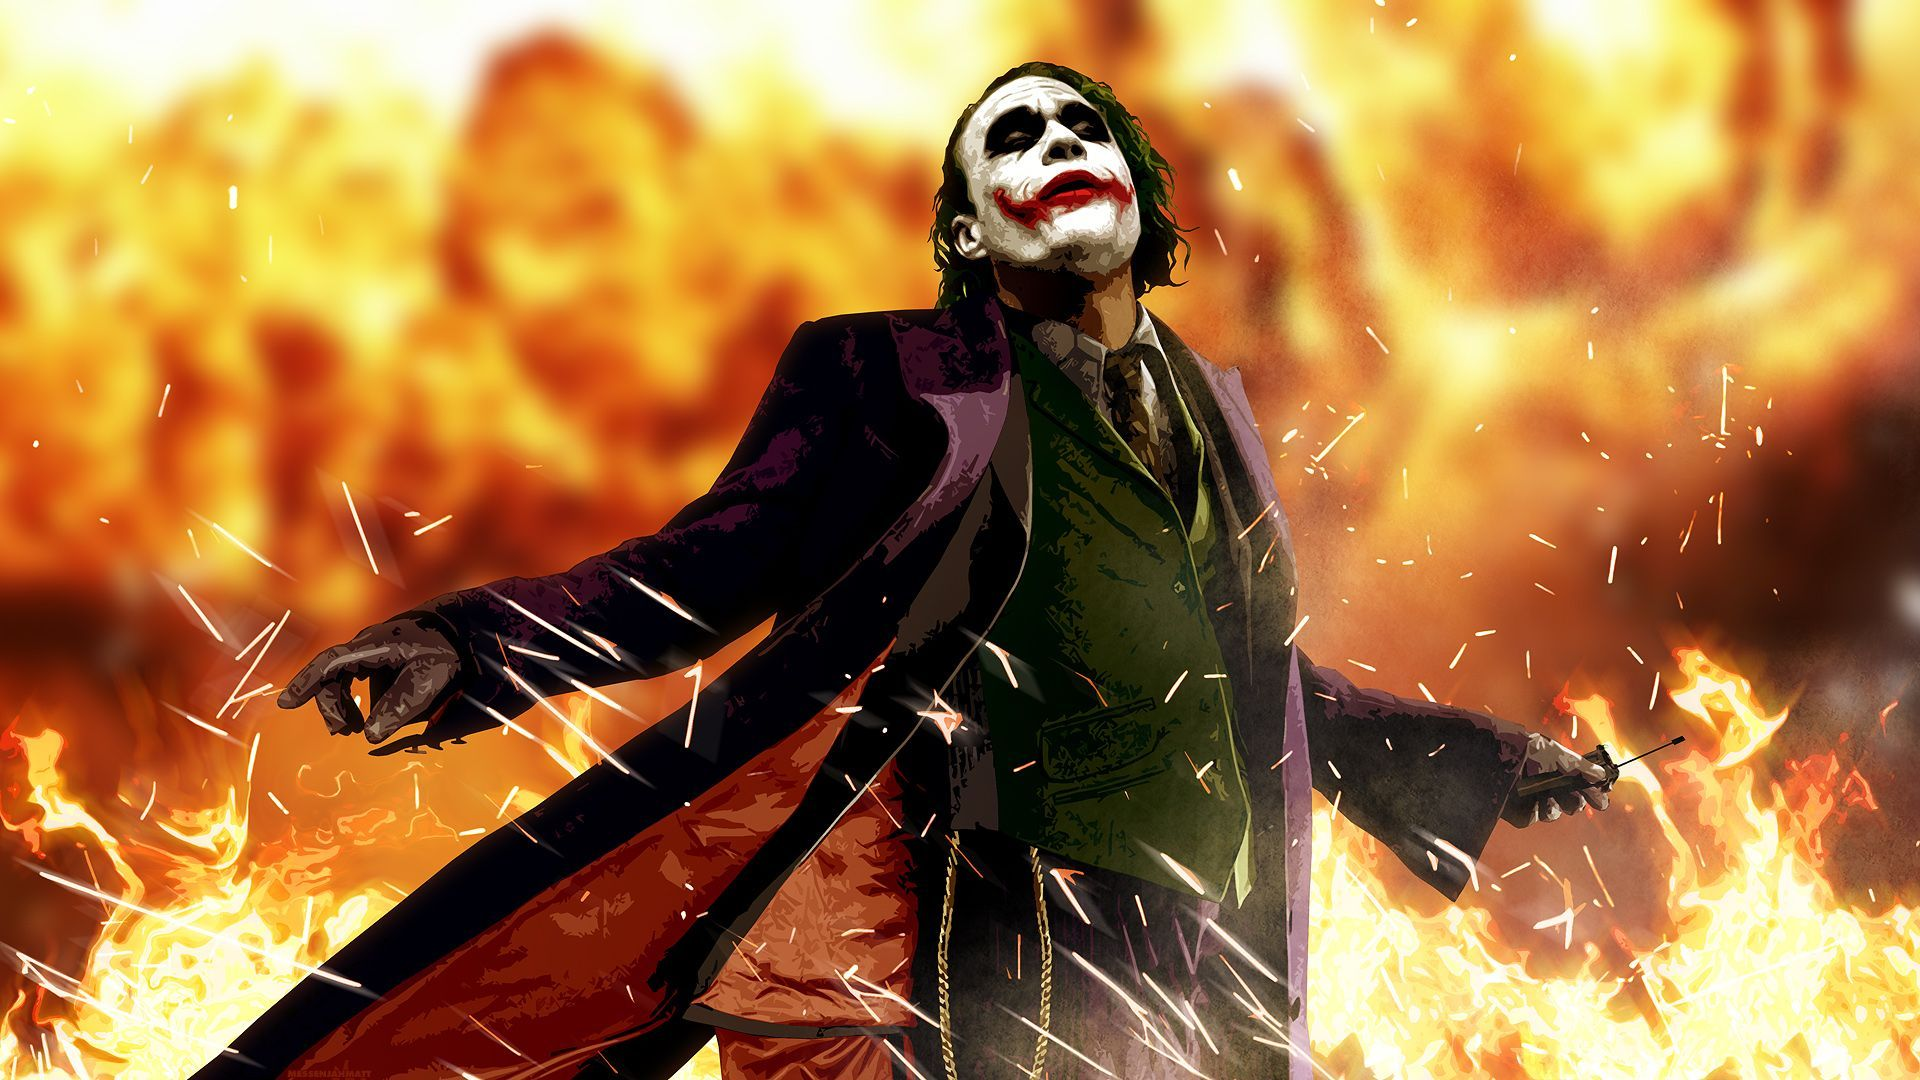 Joker HD Wallpaper Download